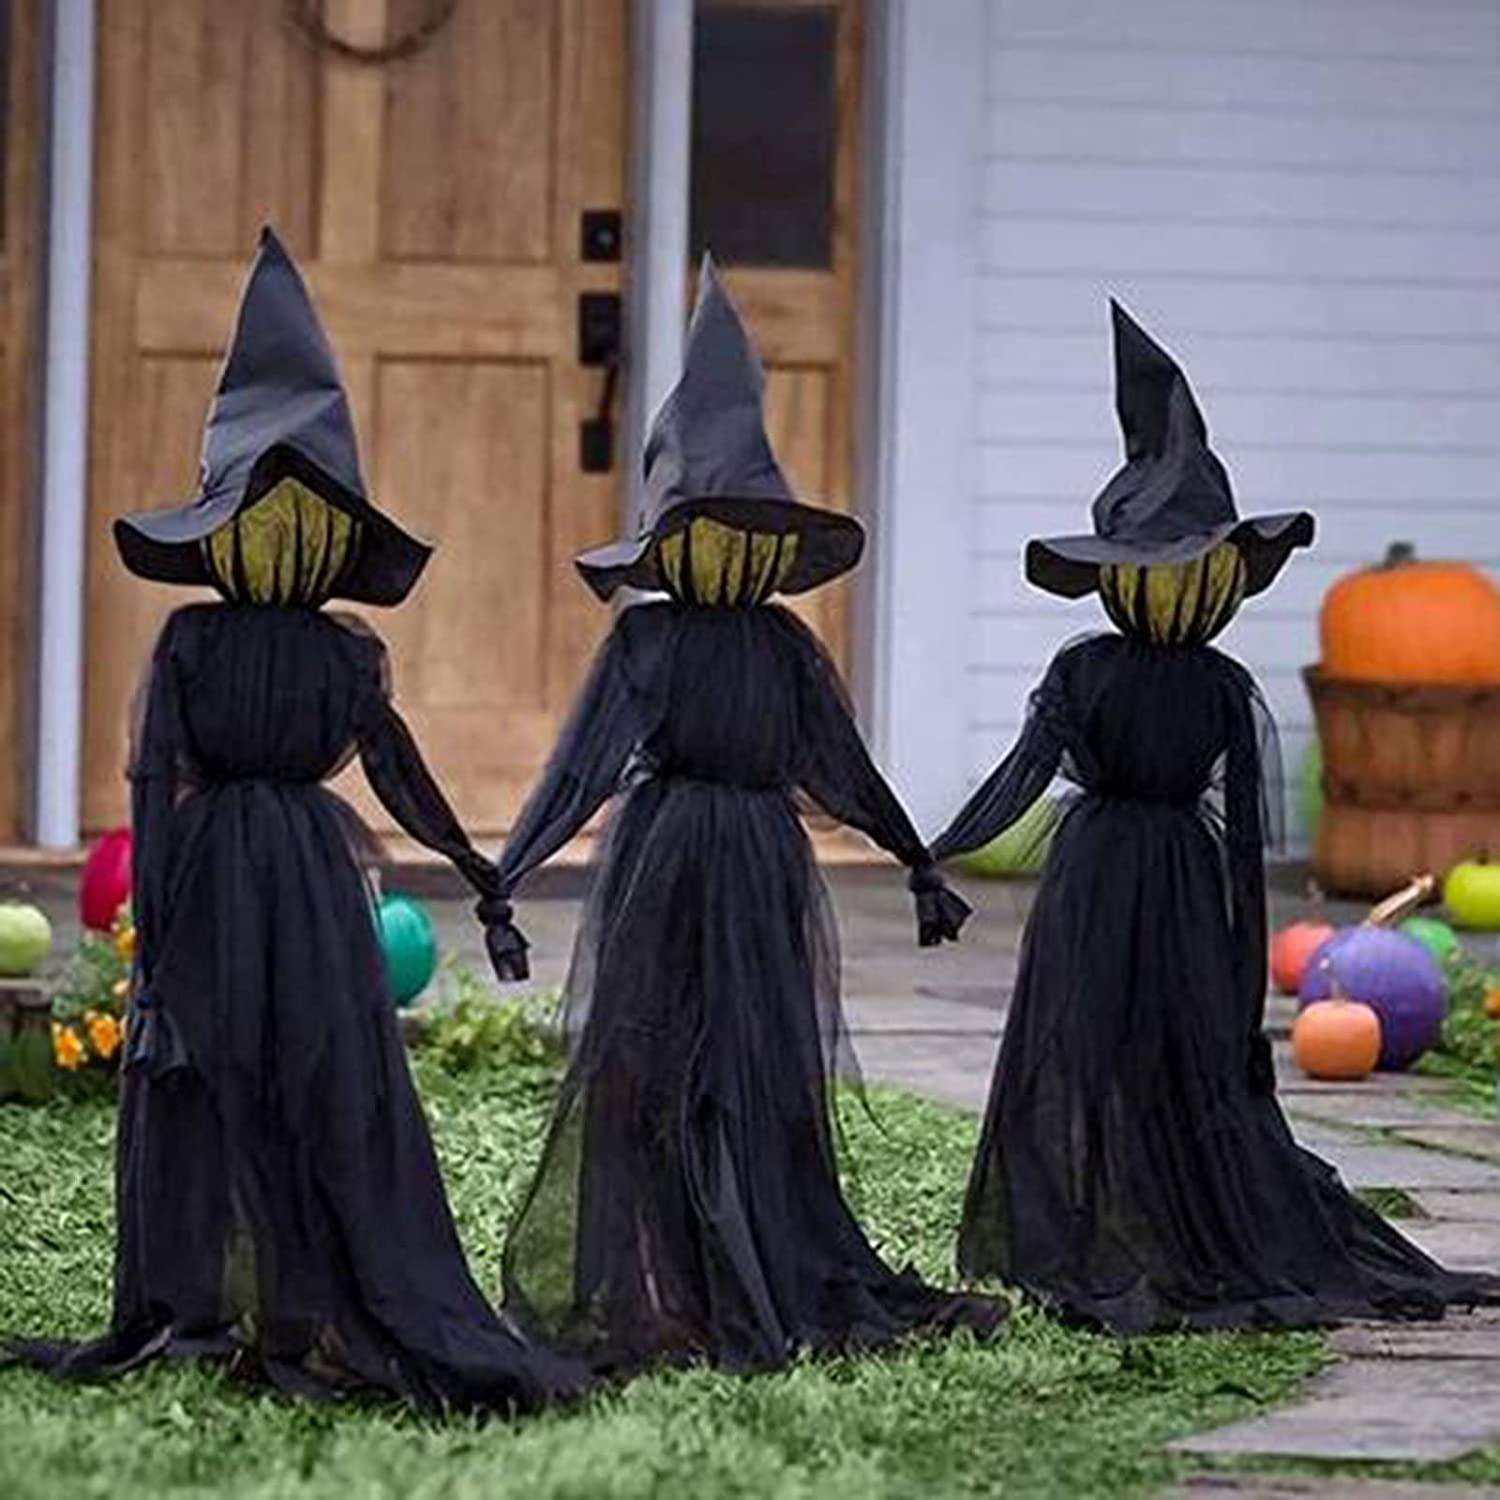 Halloween Holding Hands Witches Superior Glowing Witch with Max 41% OFF Sta Light-UP